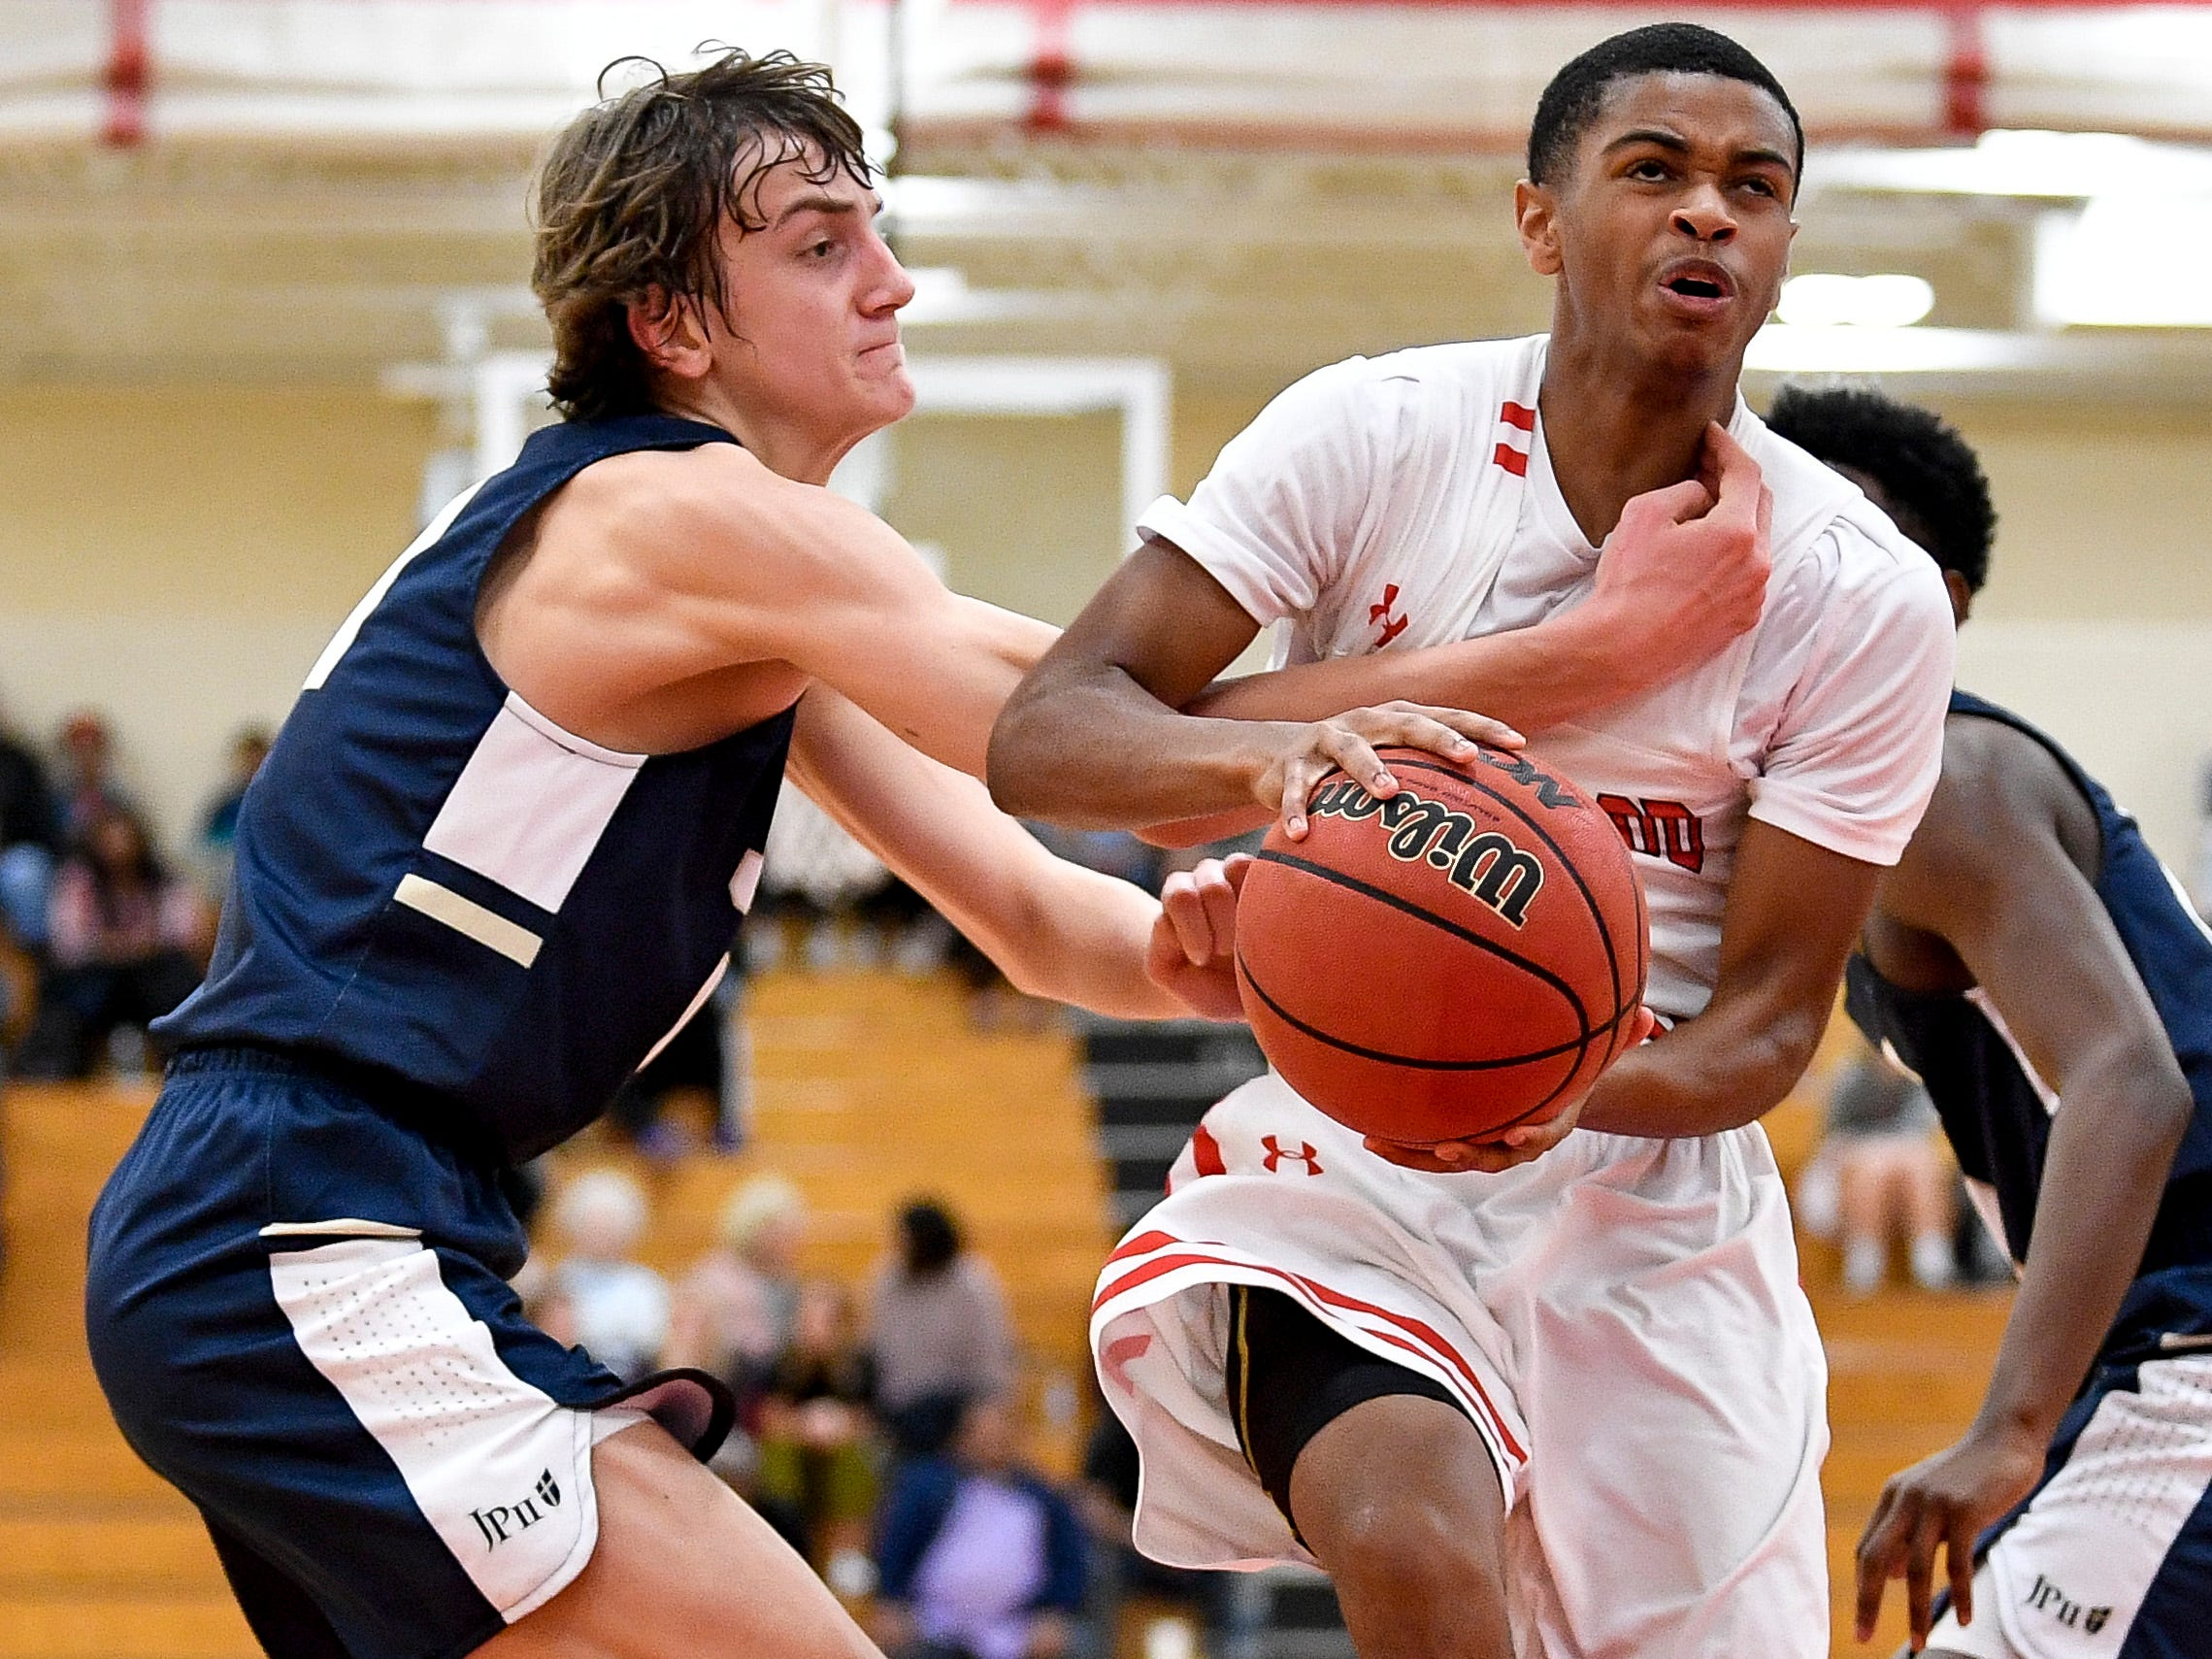 Brentwood Academy's Bj Davis (3) is fouled by Pope John Paul II's Sam Specht (11) during the second half at Brentwood Academy in Brentwood, Tenn., Friday, Jan. 4, 2019.